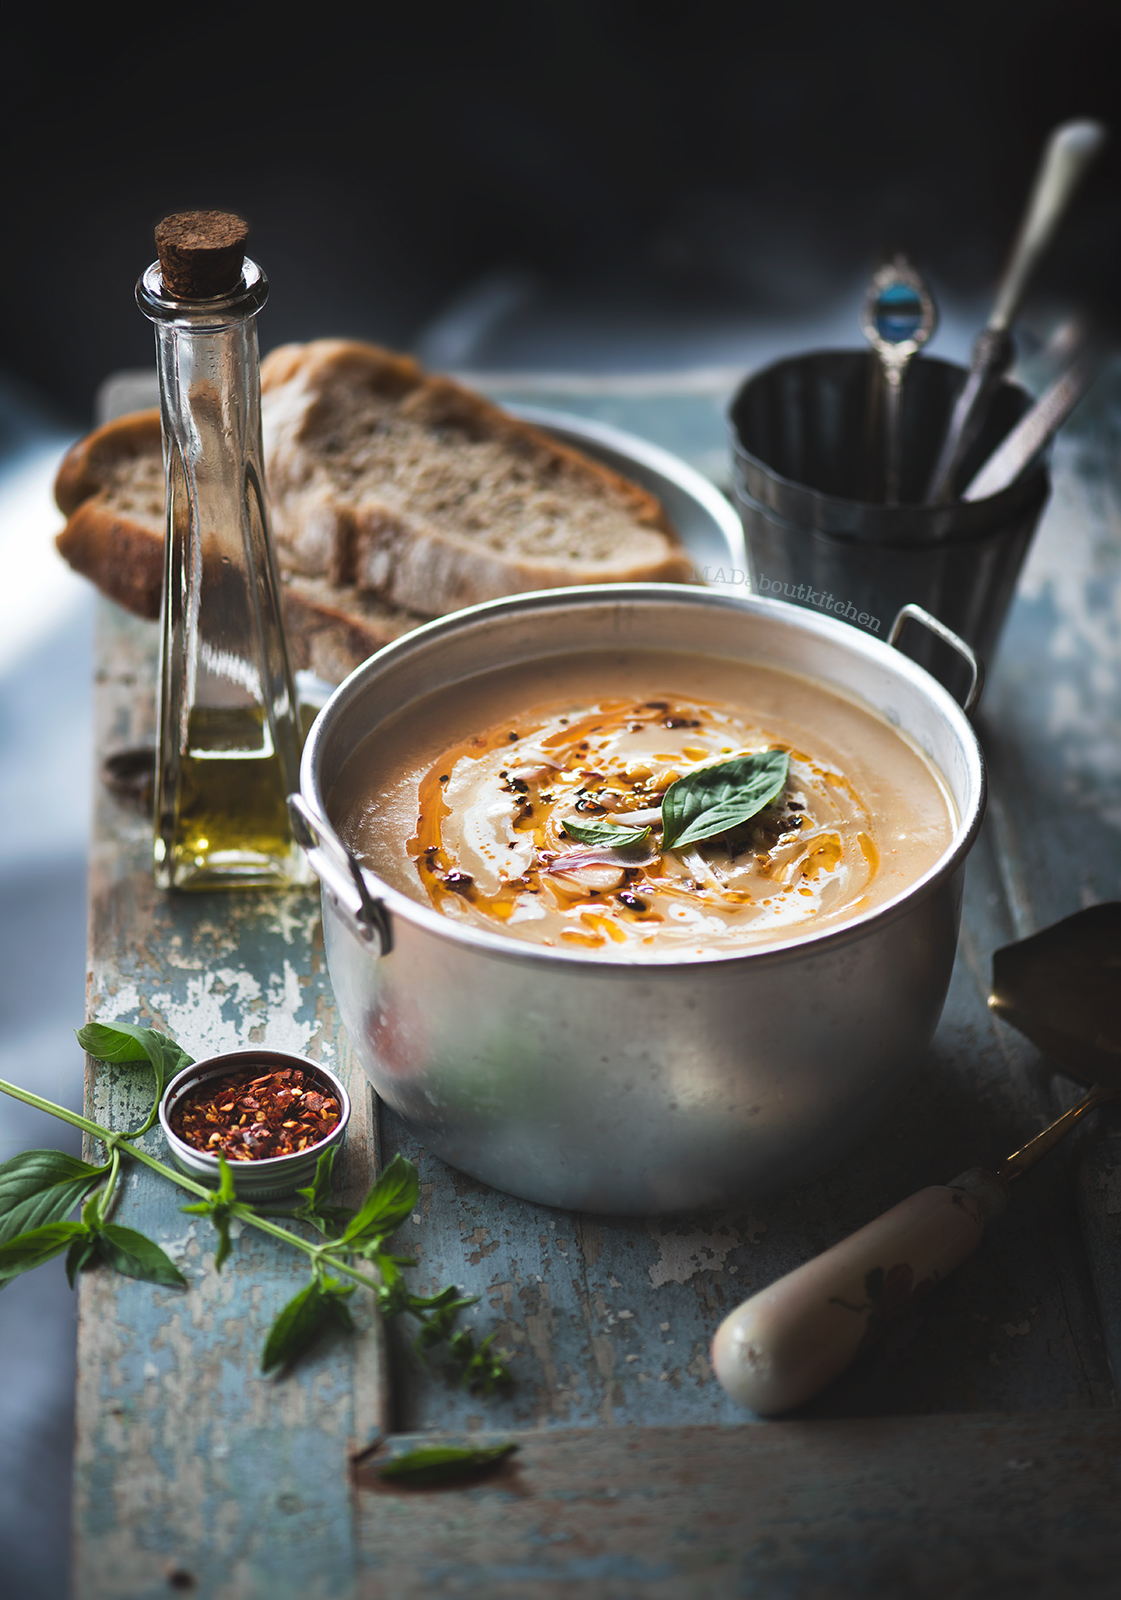 Sweet potato soup which is creamy, sweetish, spicy and is perfect when topped with fresh cream, chilly flakes and is had warm with a crusty bread.